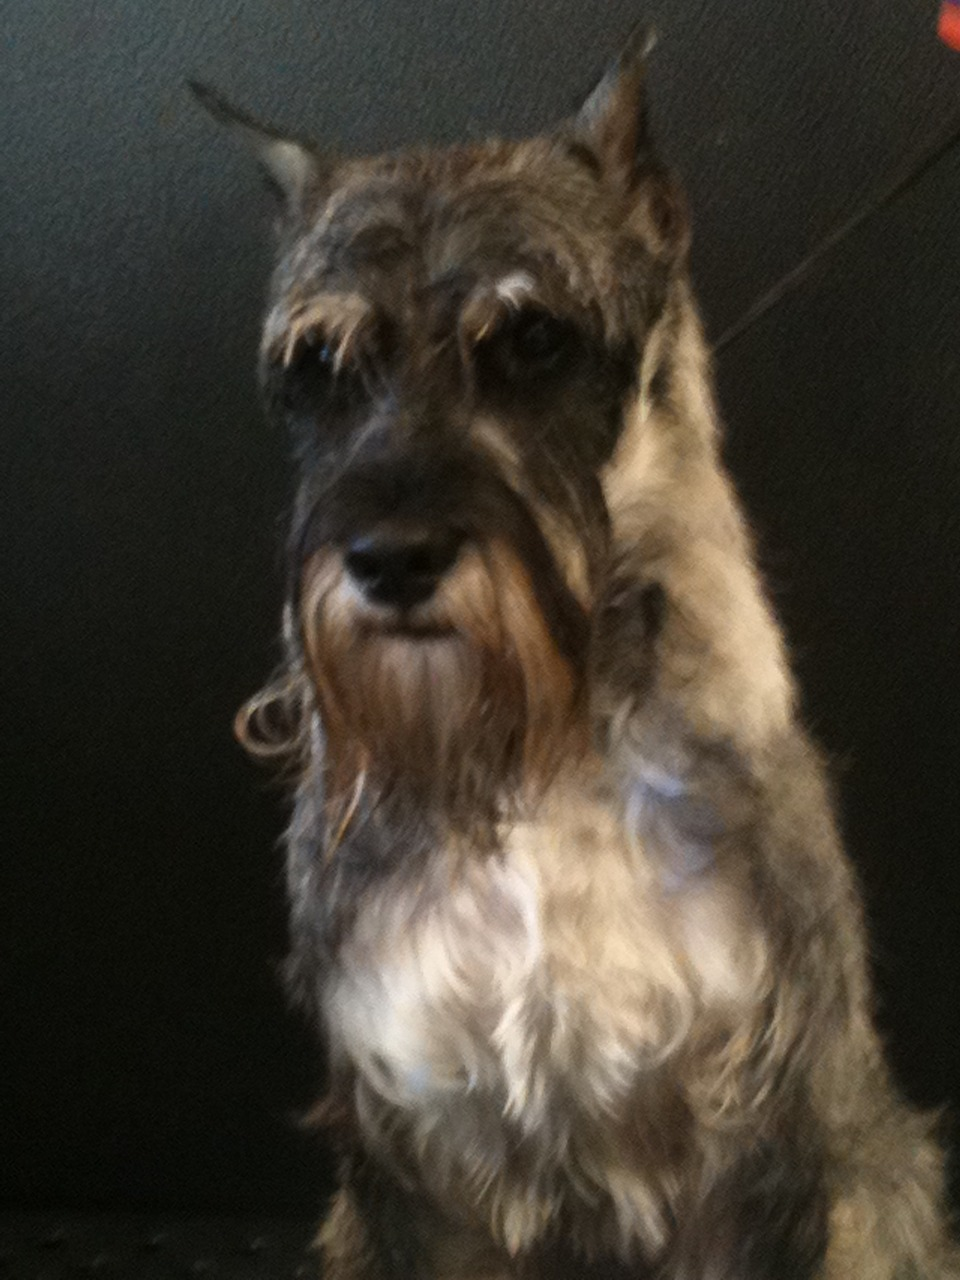 This cool dog is Franklin and he's a Standard Schnauzer who is also a champion show dog!!